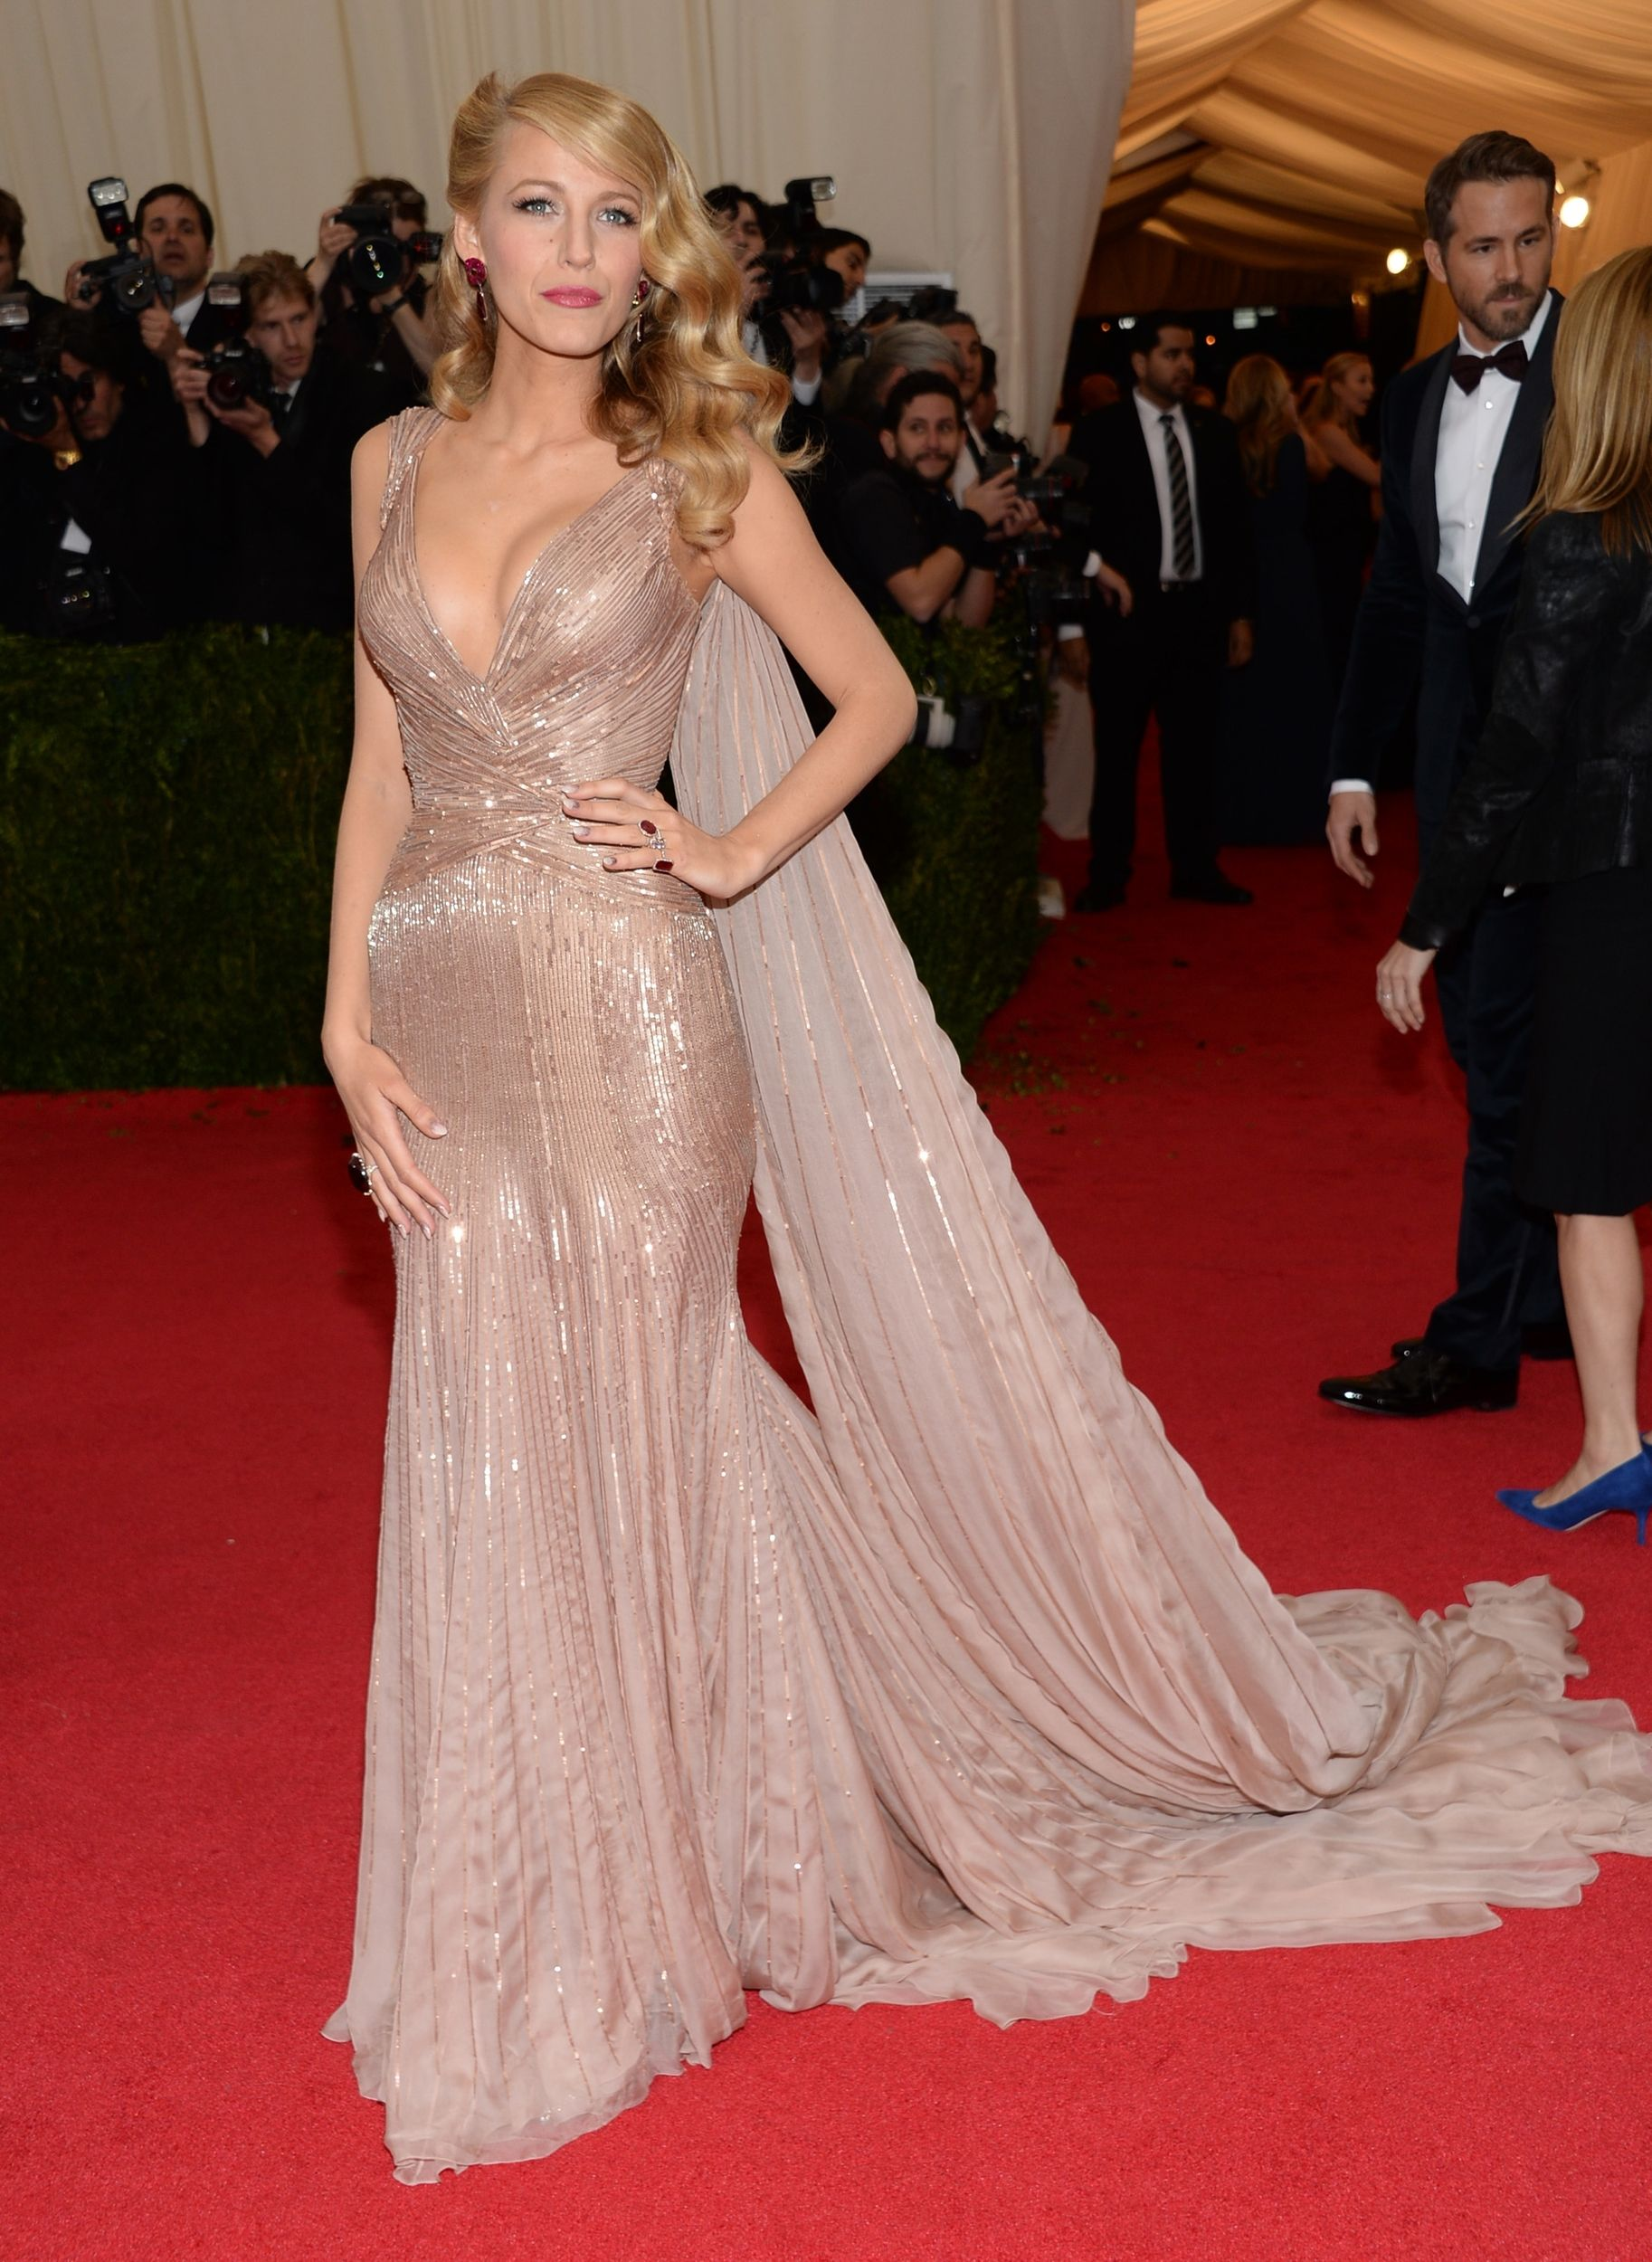 Blake Lively in Gucci Première - Met Gala 2014 | Fashion Favorites ...